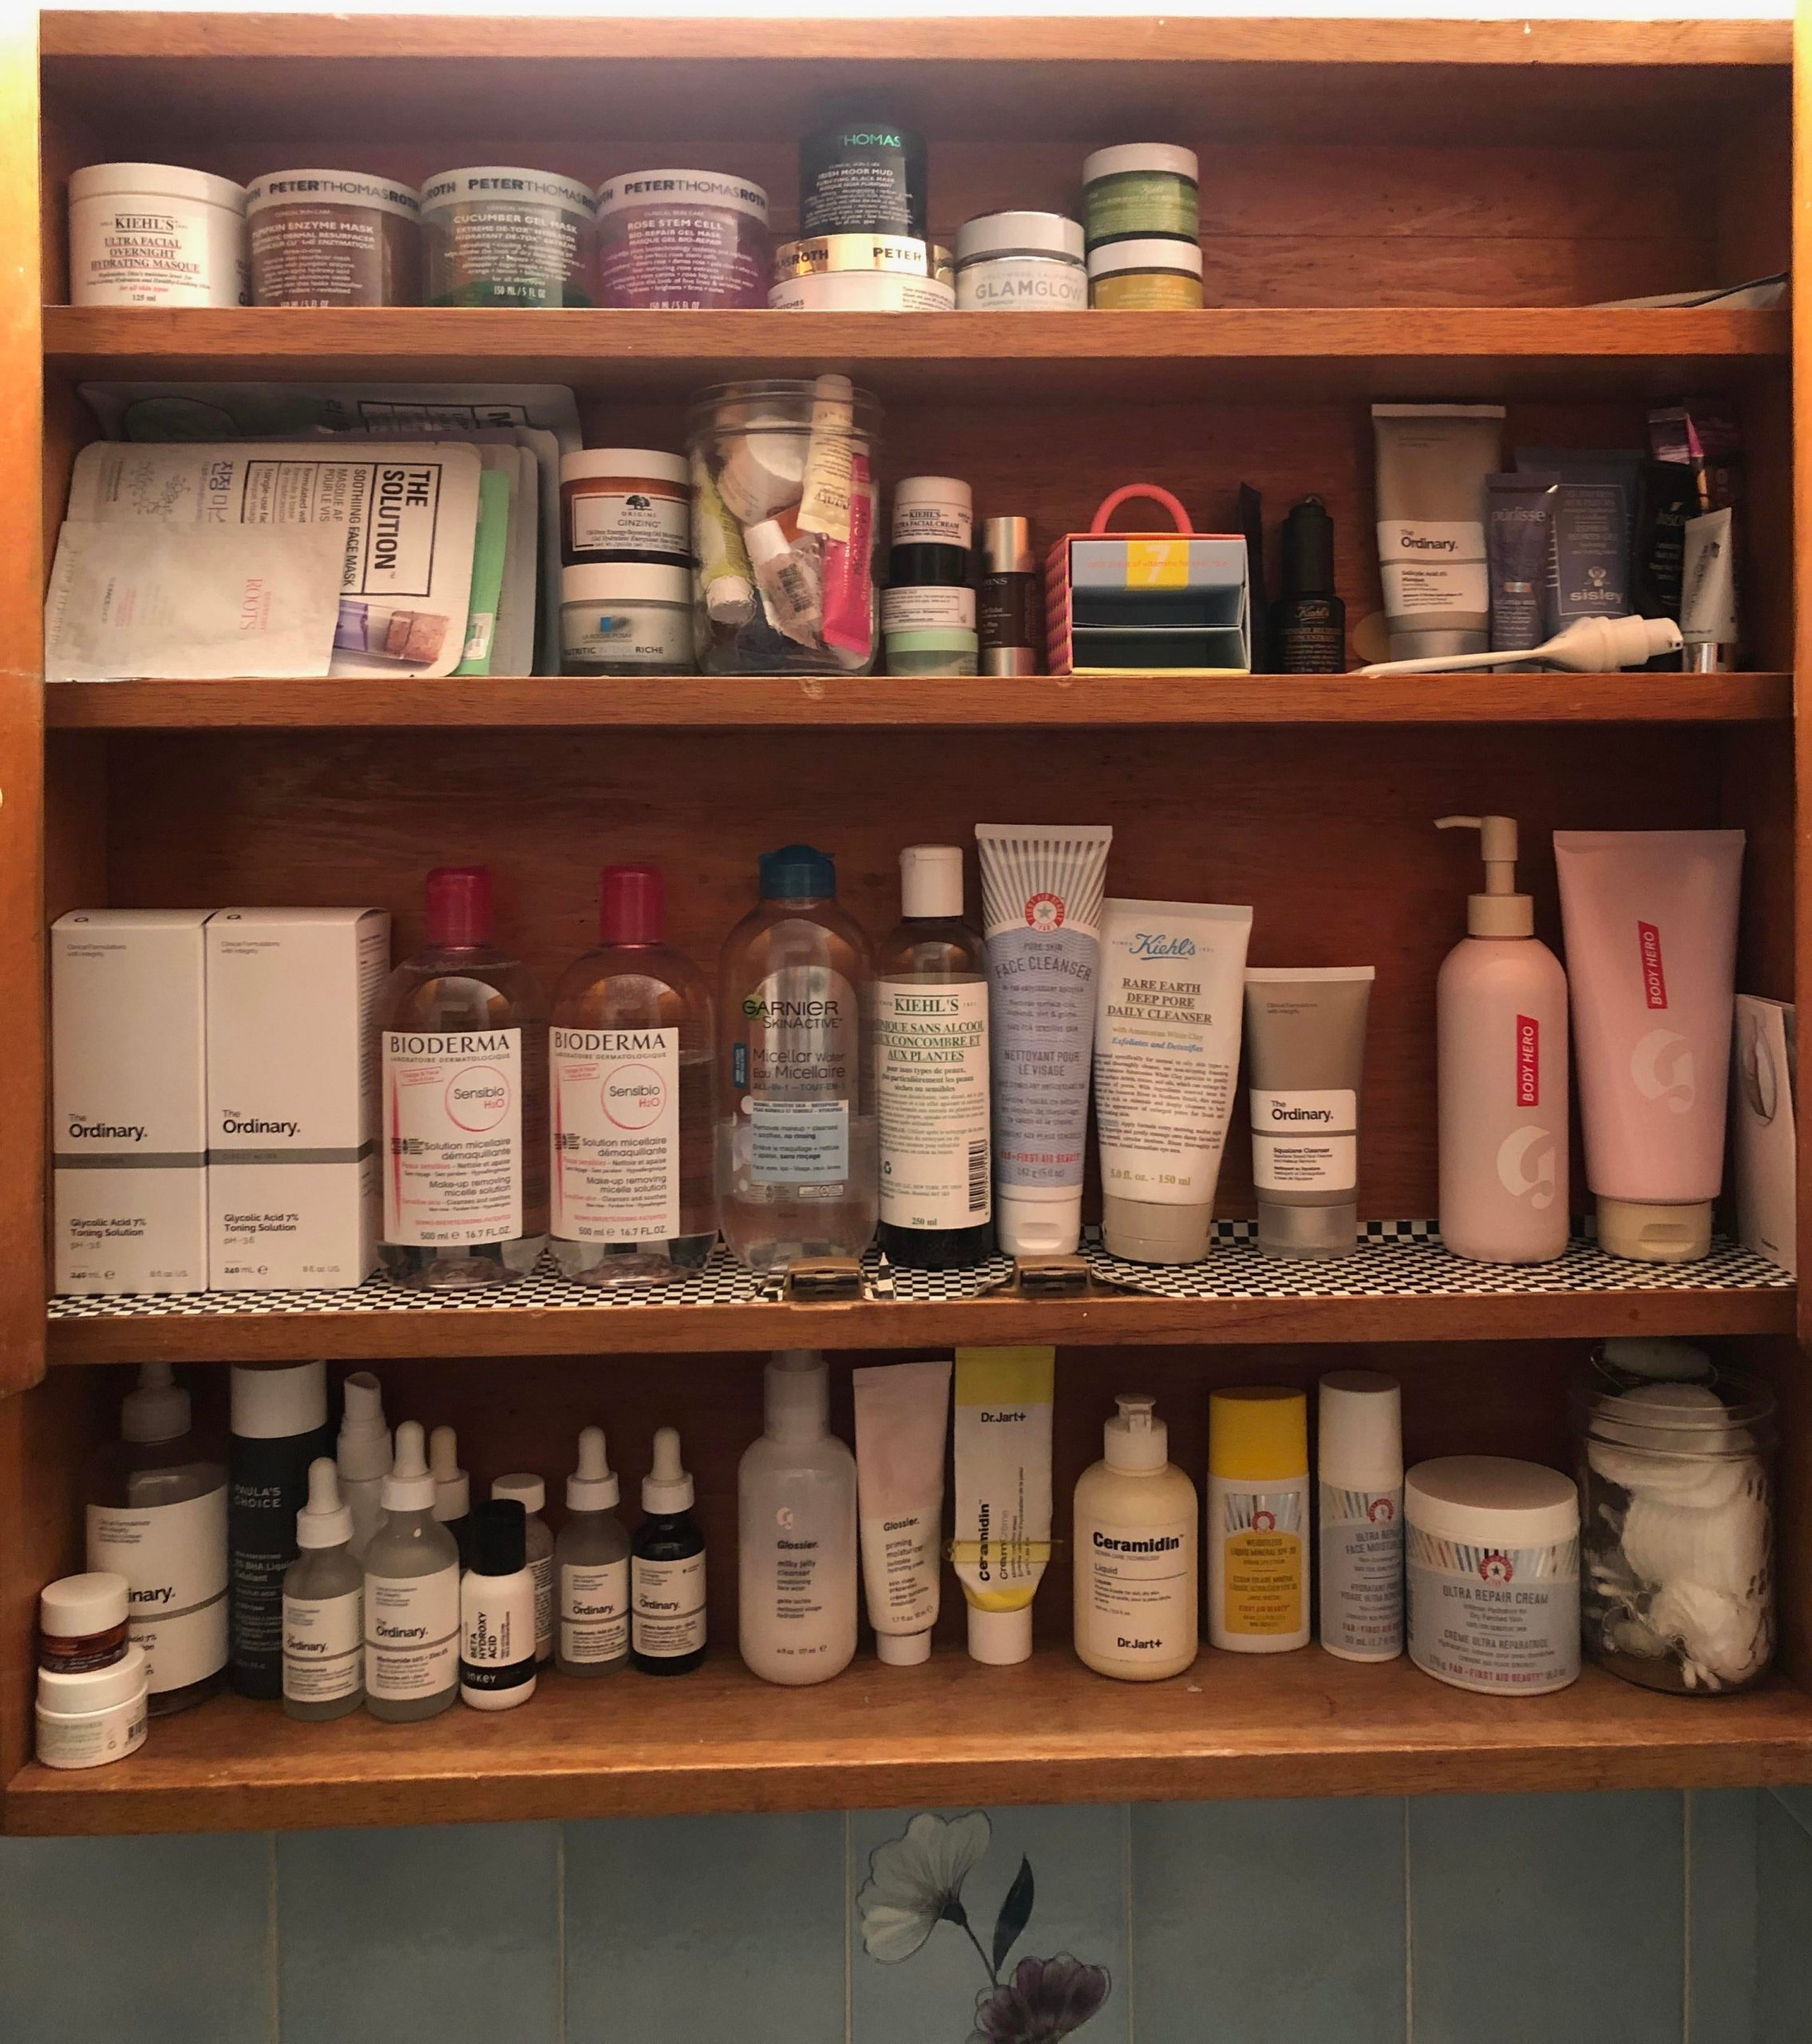 [Shelfie] My friend just got her own bathroom in her apartment – I call this her library